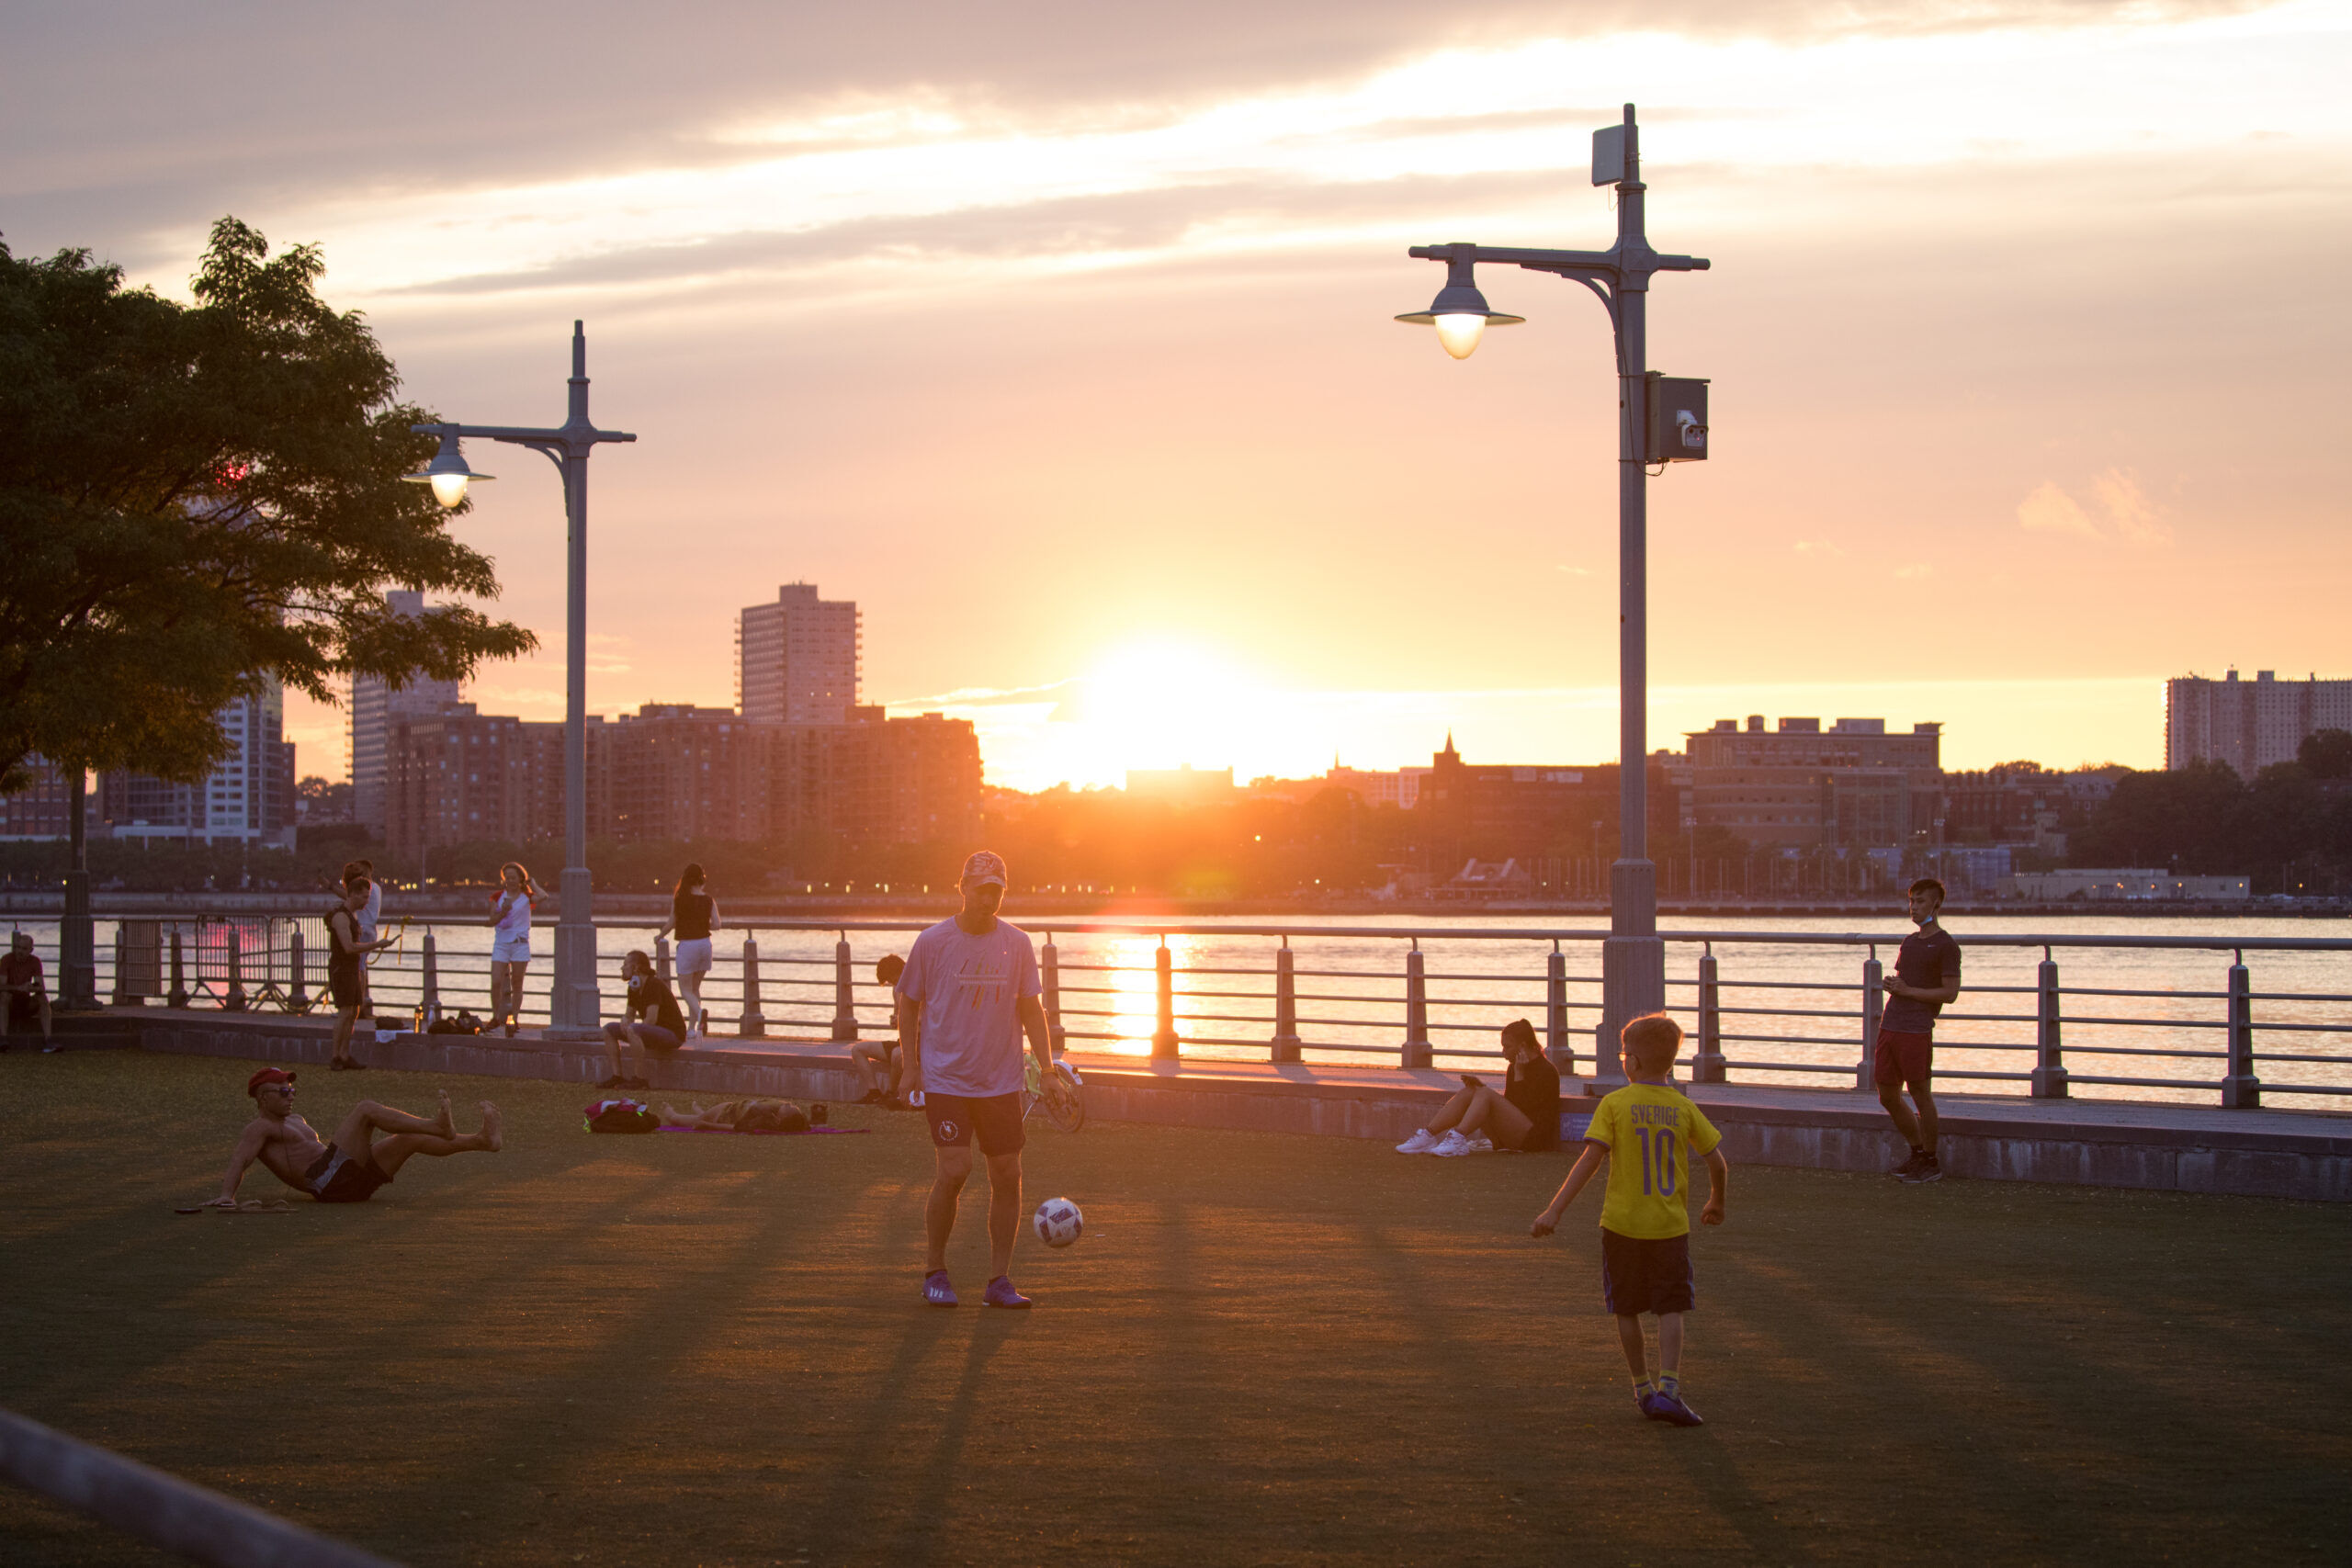 Sunset at Pier 46 as soccer players practice on the field